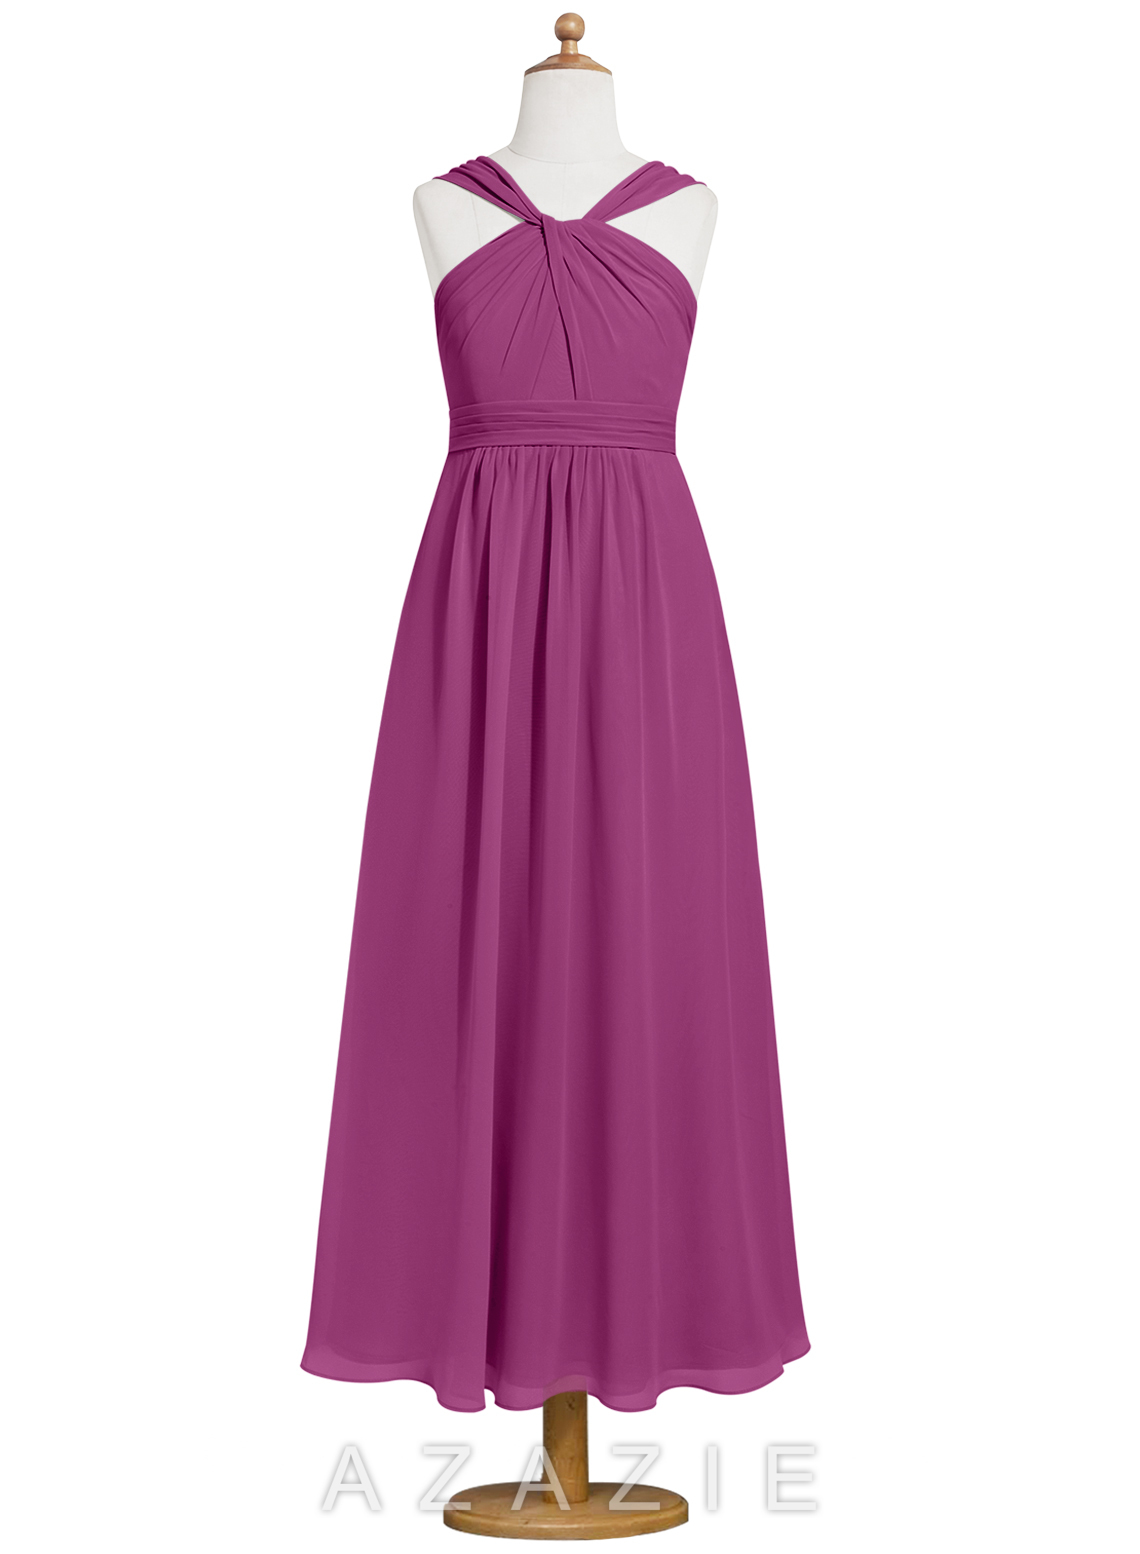 Junior Bridesmaid Dresses | Azazie